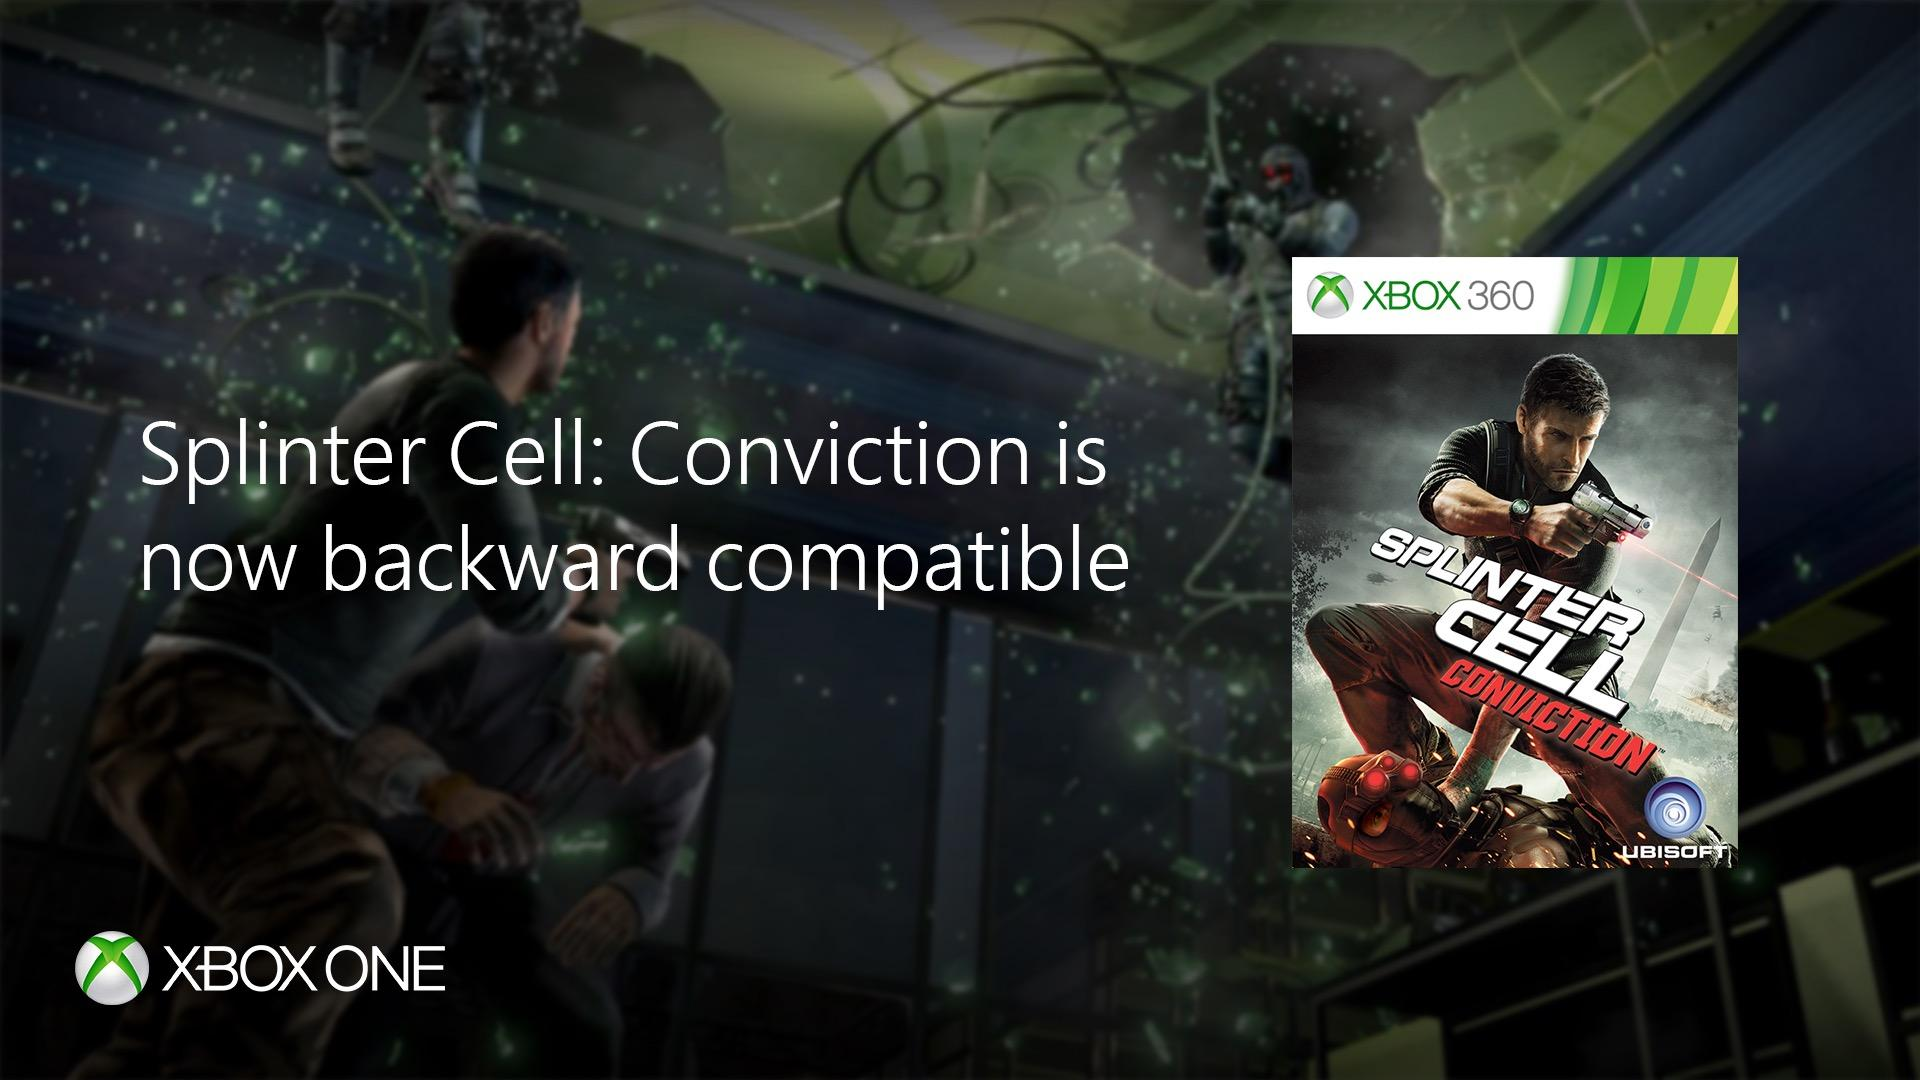 Splinter Cell: Conviction Has Gone Backward Compatible on Xbox One